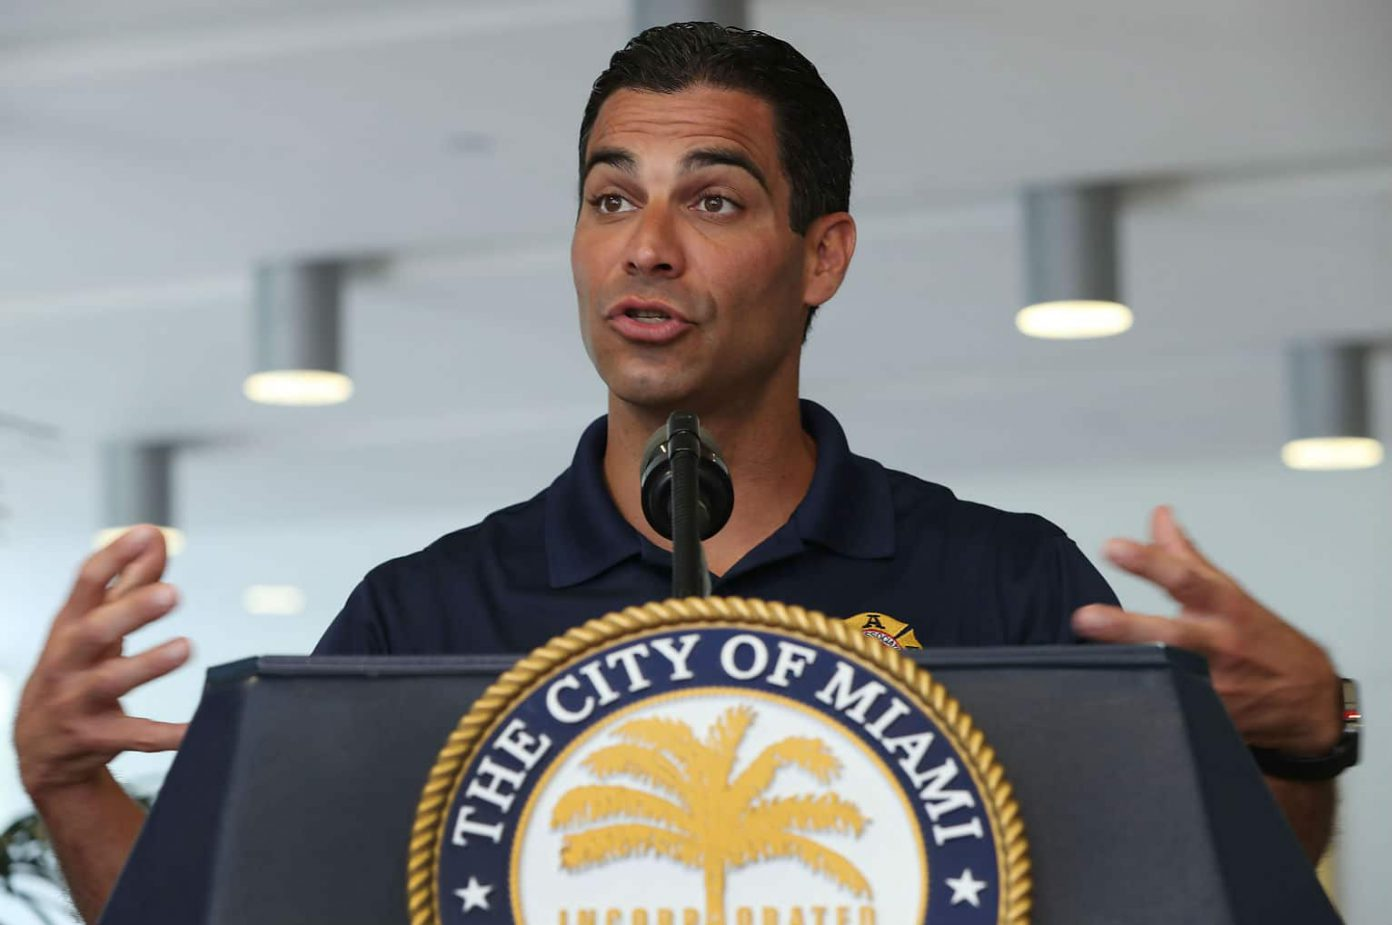 90% of Bitcoin mining comes from 'dirty energy,' Miami mayor says